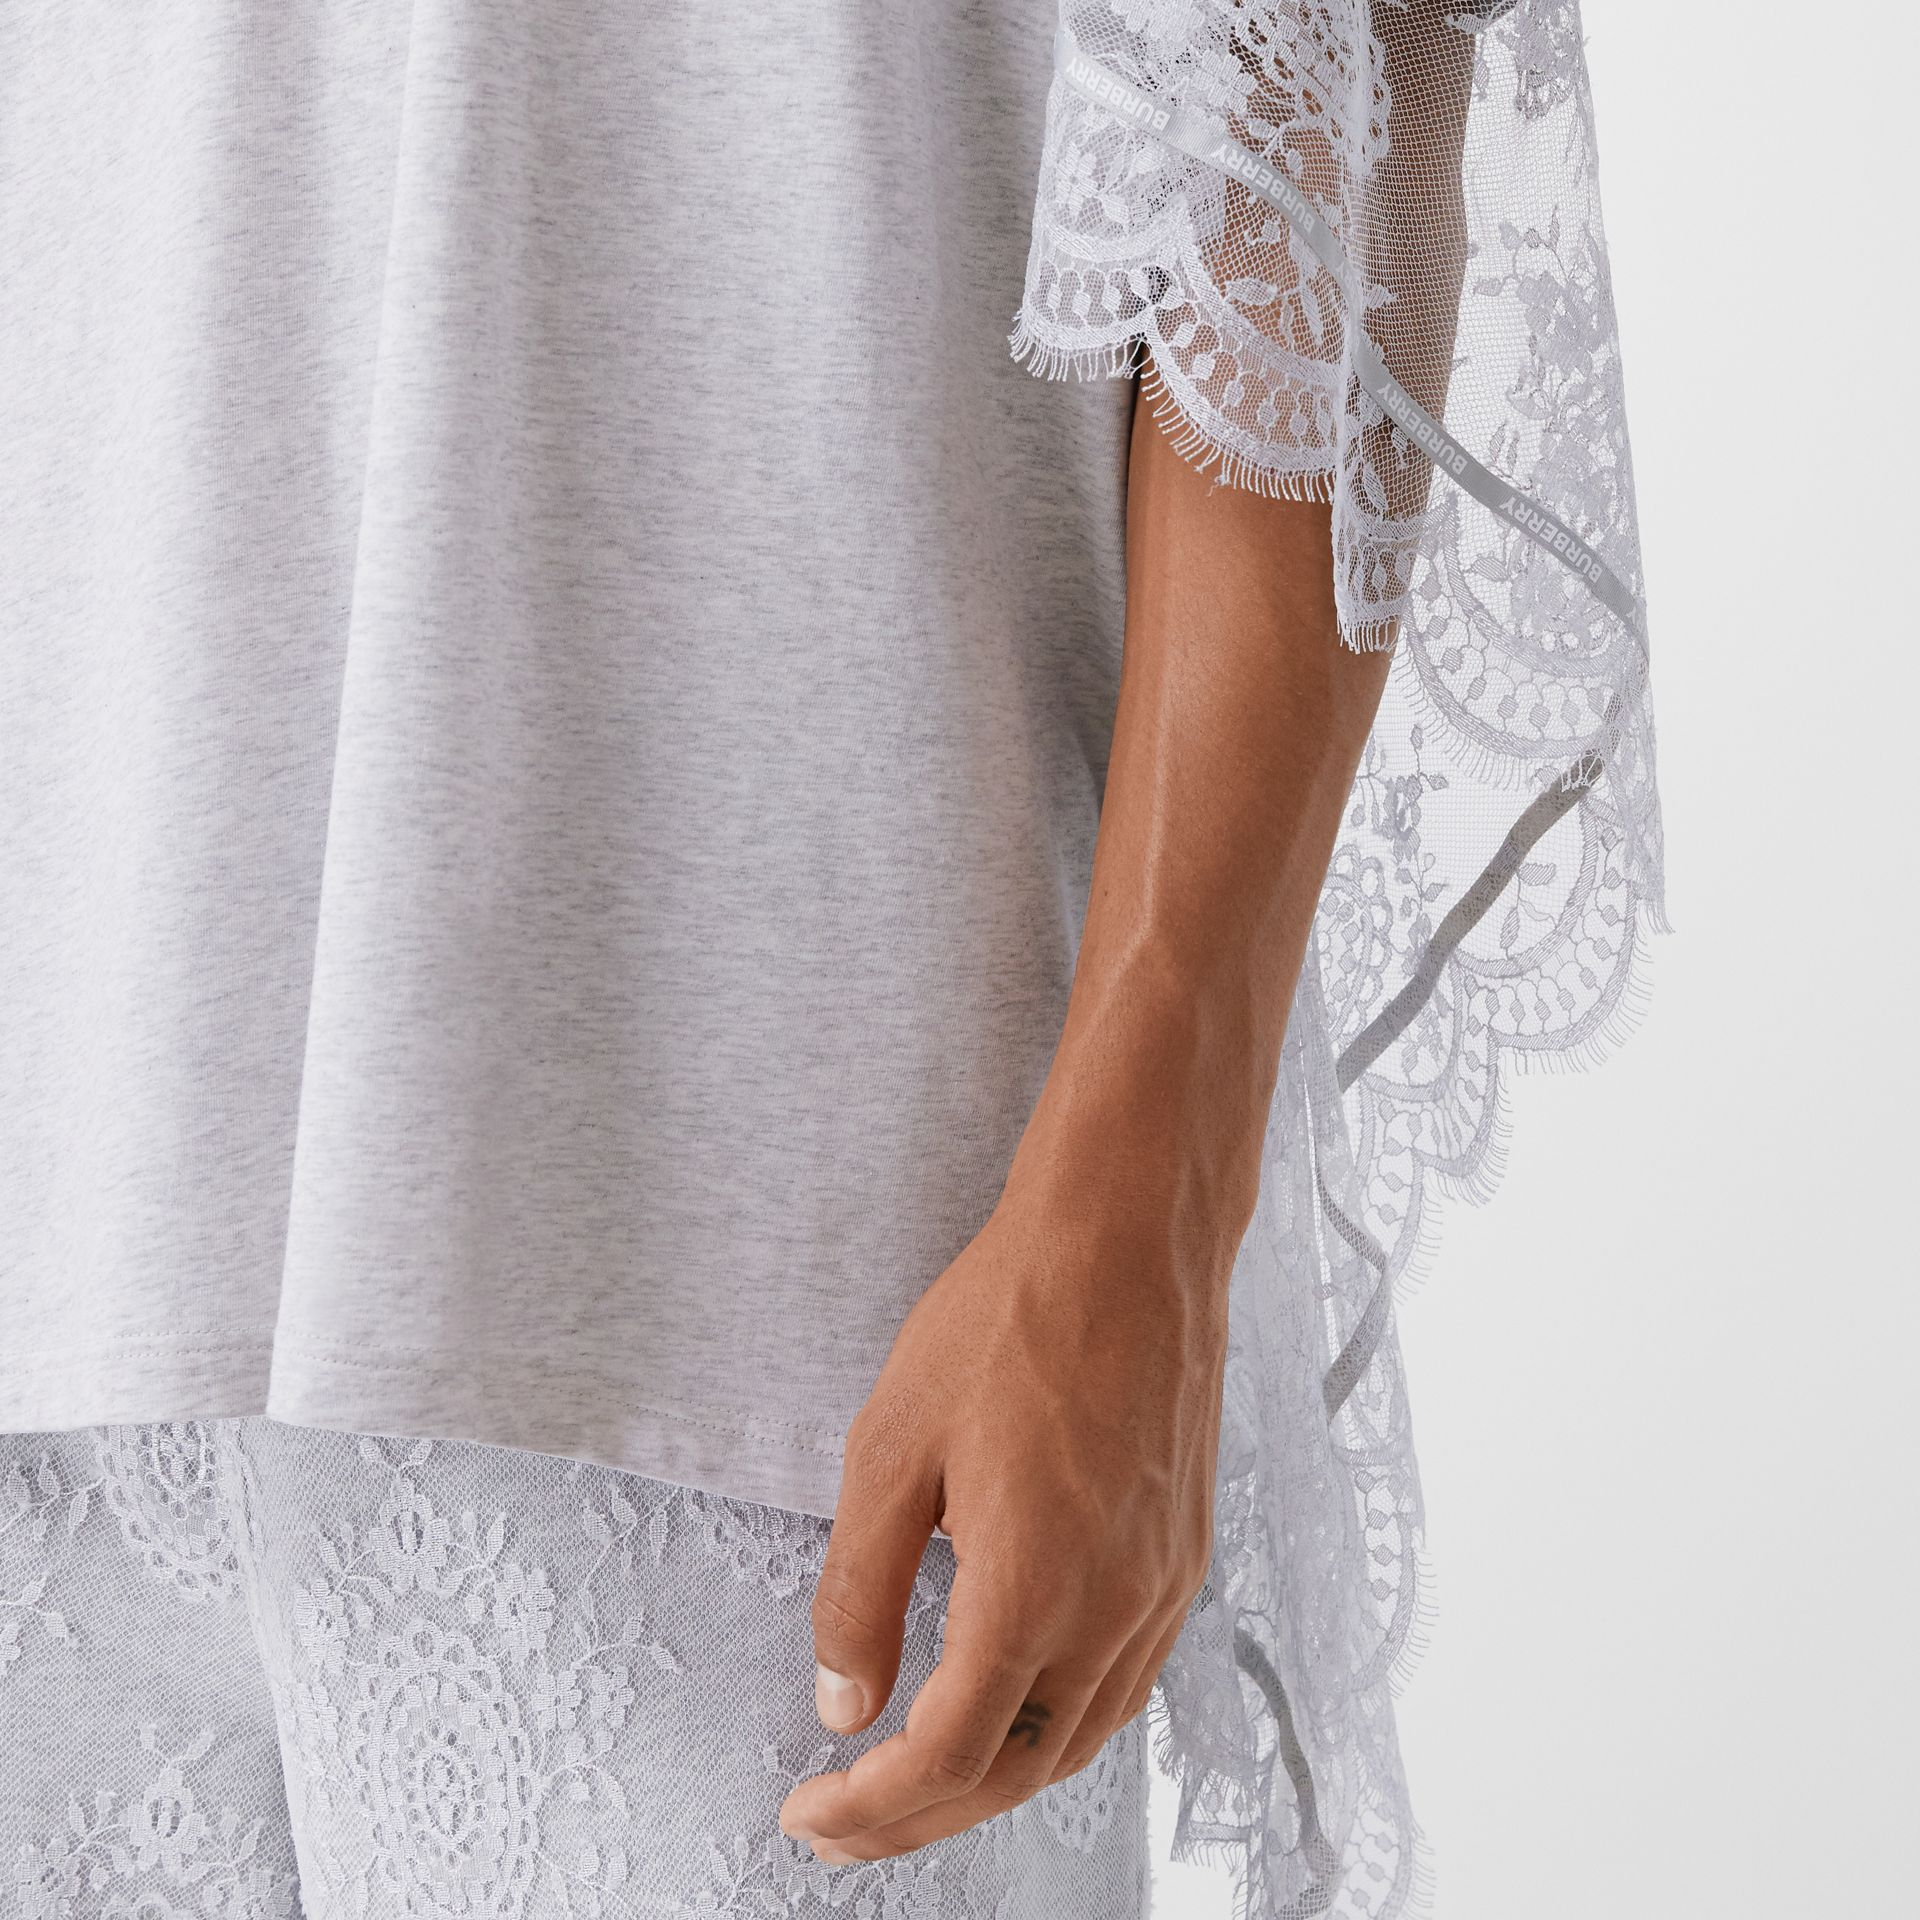 Chantilly Lace Cape Detail Cotton Oversized T-shirt in Porcelain | Burberry - gallery image 6